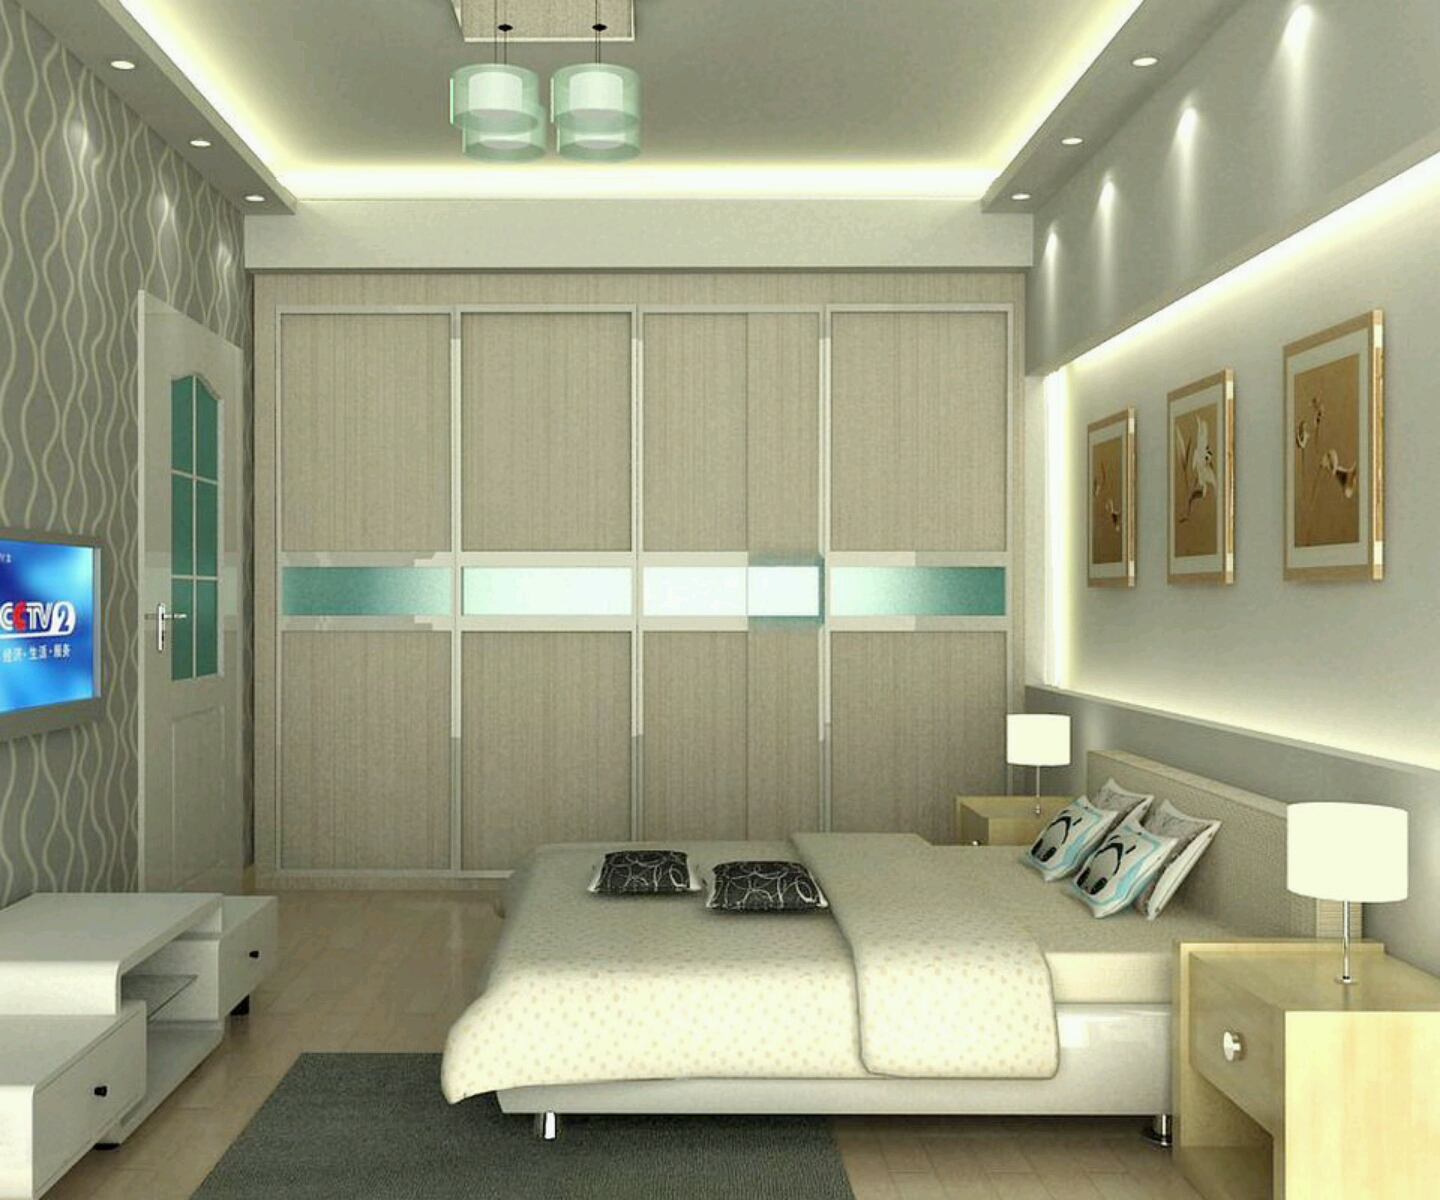 New home designs latest modern homes bedrooms designs for Latest bedroom design ideas